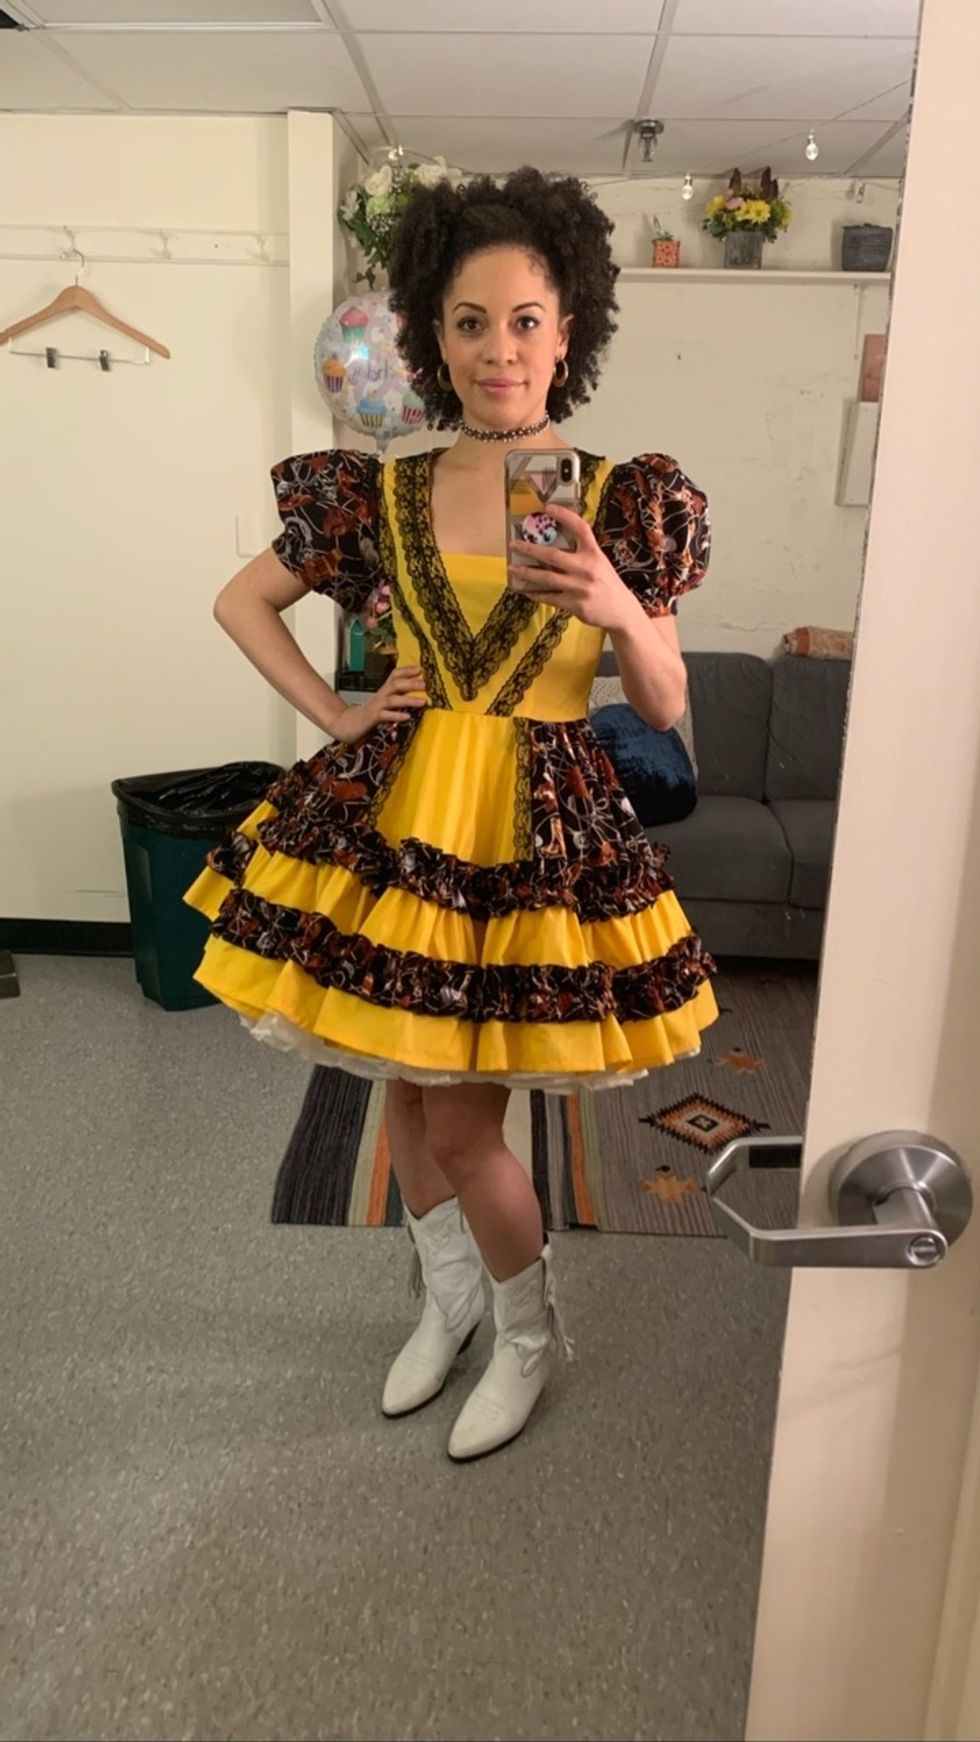 Hutchings taking a mirror selfie in her dressing room. She is wearing a poofy yellow dress with black lace detail, with a choker on her neck and hoop earrings. Her afro is pulled back part of the way.